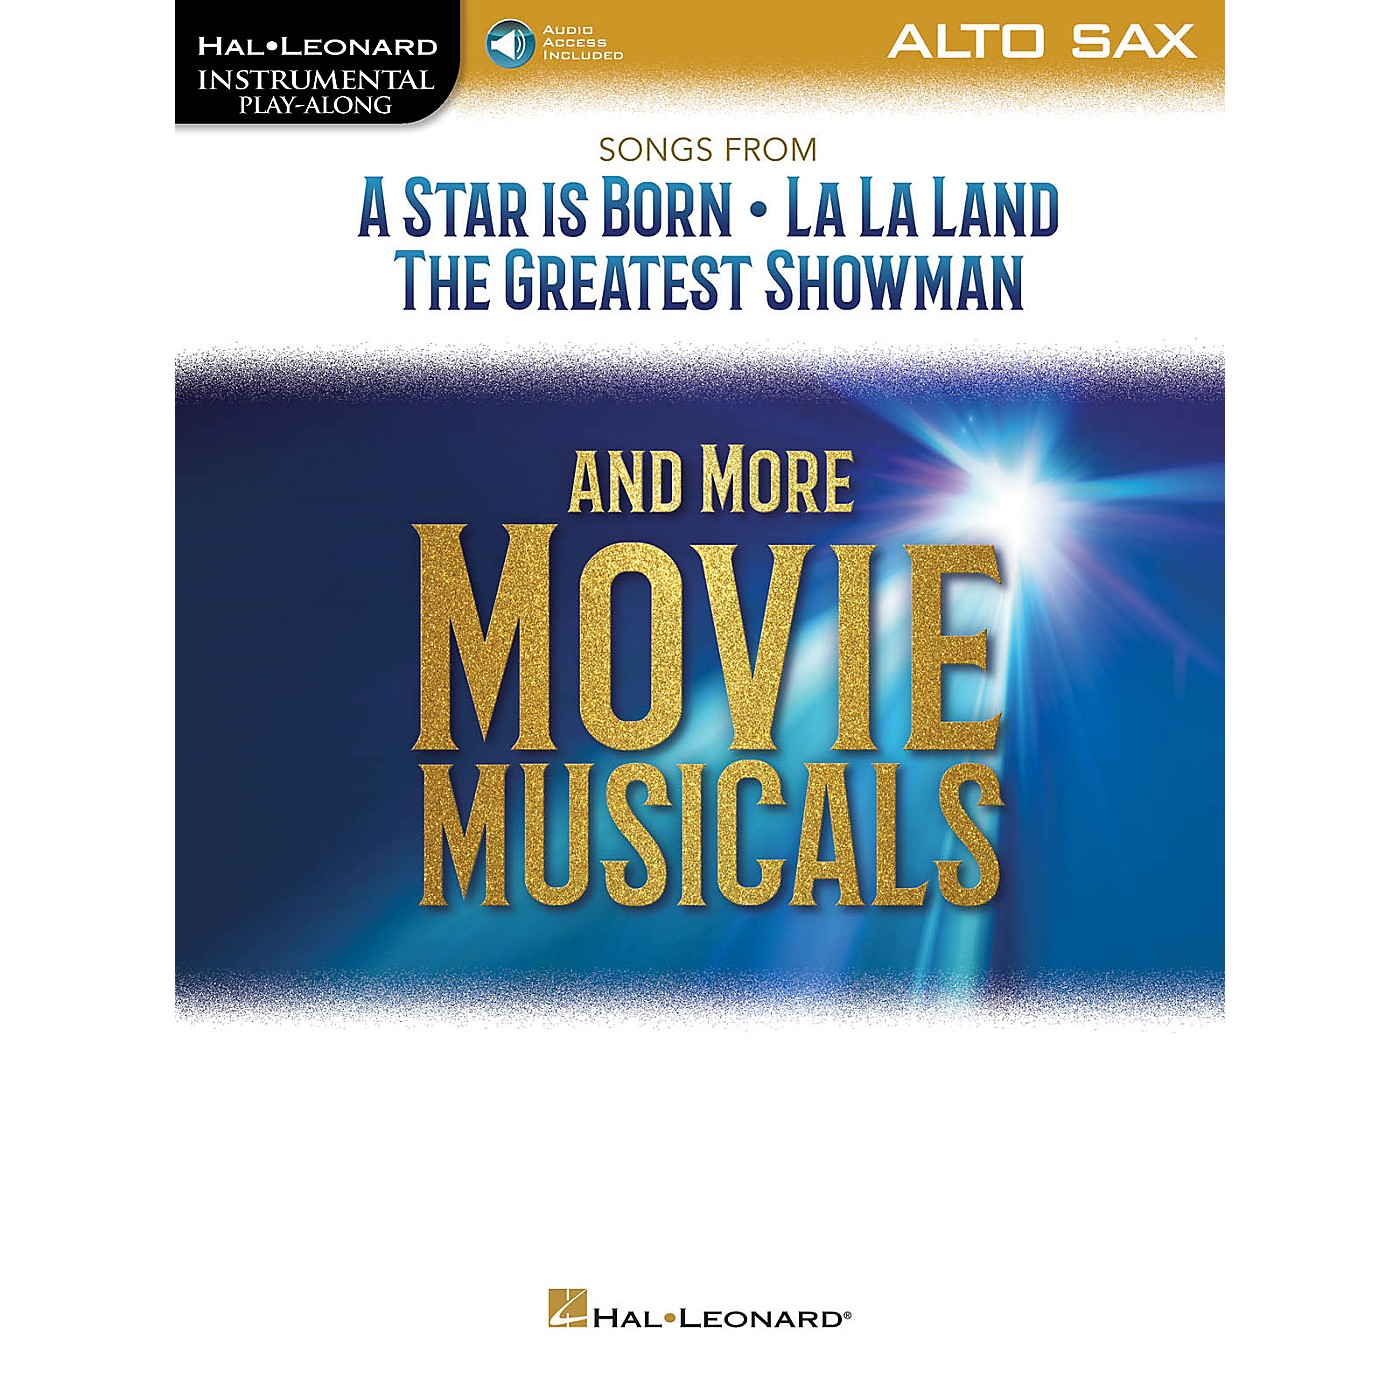 Hal Leonard Songs from A Star Is Born, La La Land and The Greatest Showman Instrumental Play-Along for Alto Sax Book/Audio Online thumbnail